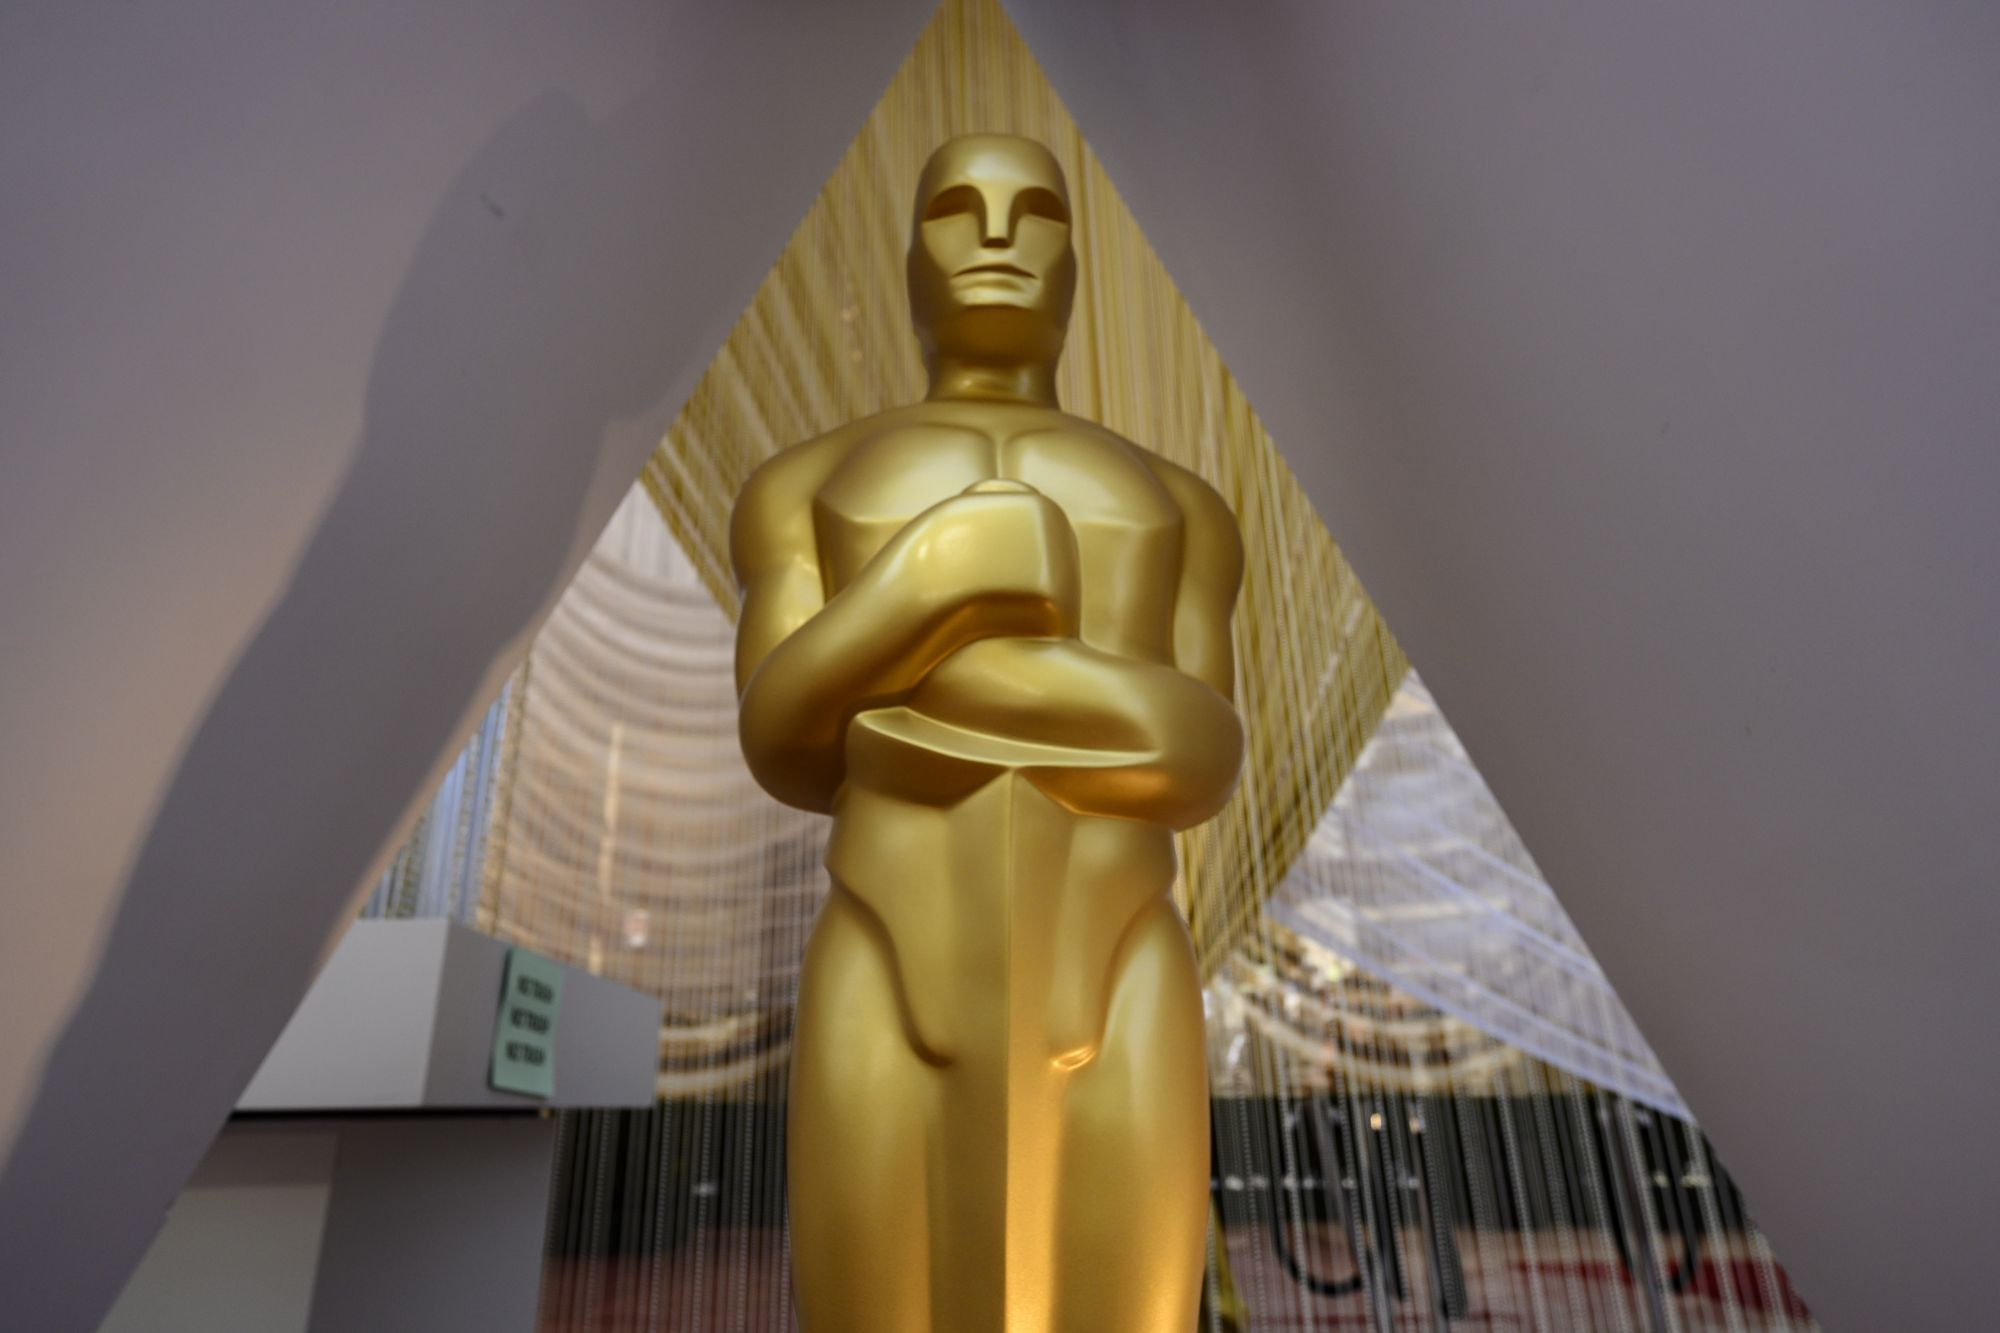 An Oscar statue is displayed on the red carpet on the eve of the 92nd Oscars at the Dolby Theatre in Hollywood, California on February 8, 2020. (Photo by Eric BARADAT / AFP)